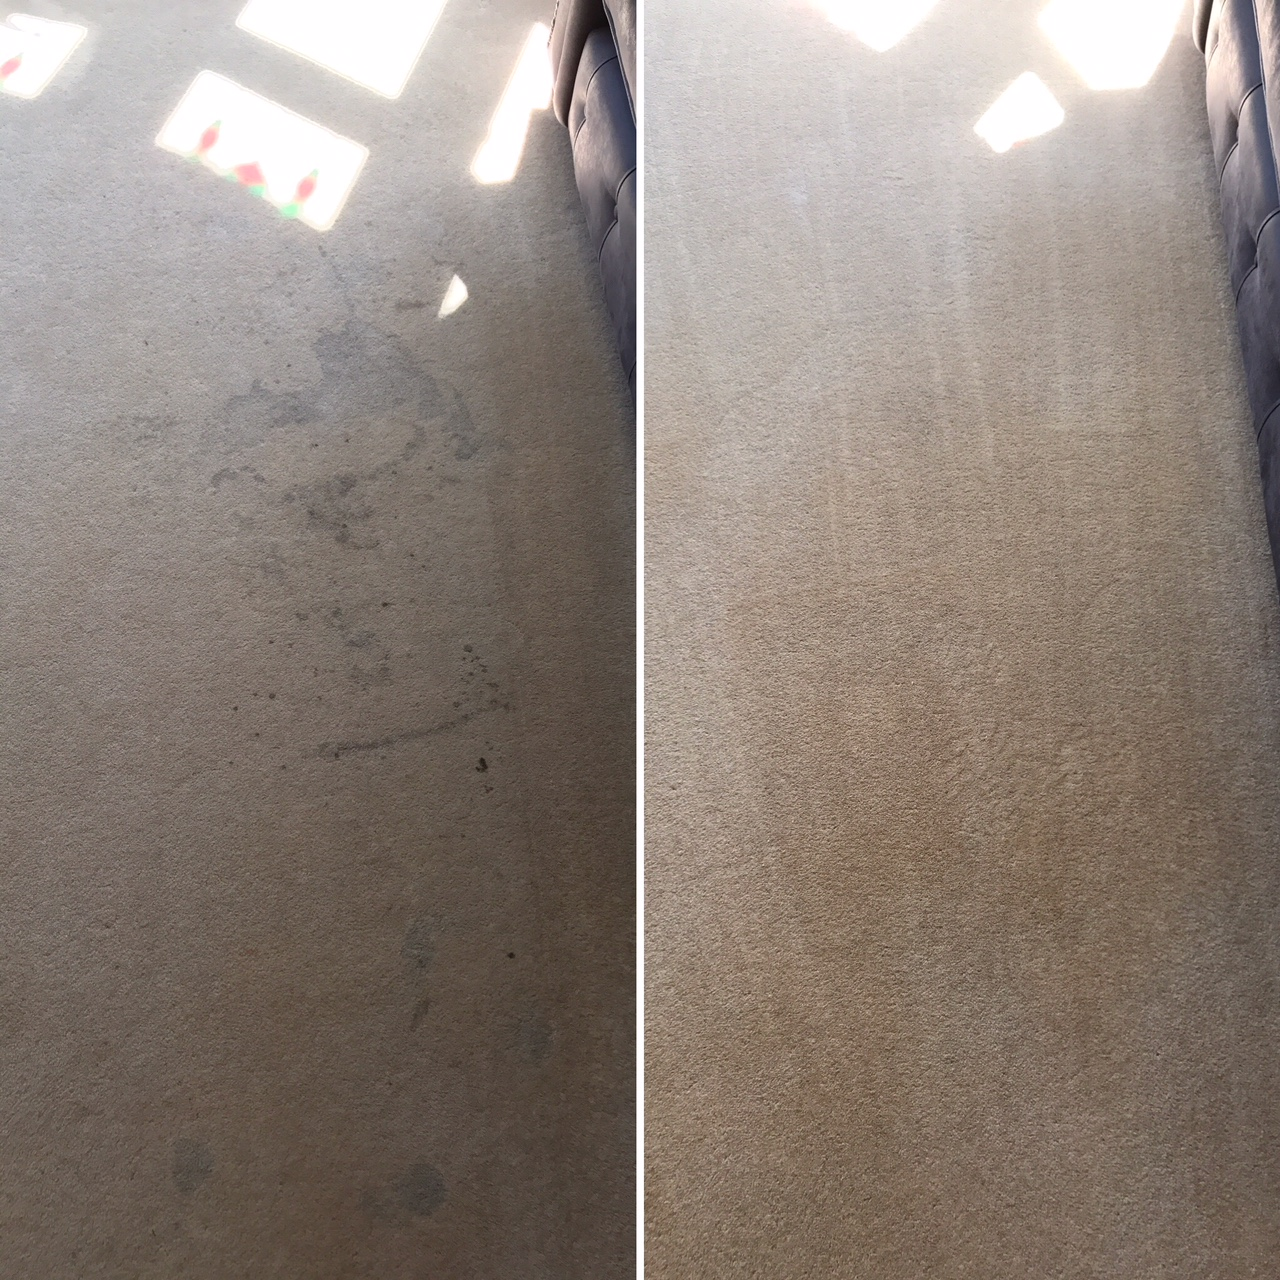 Carpet cleaning before and after